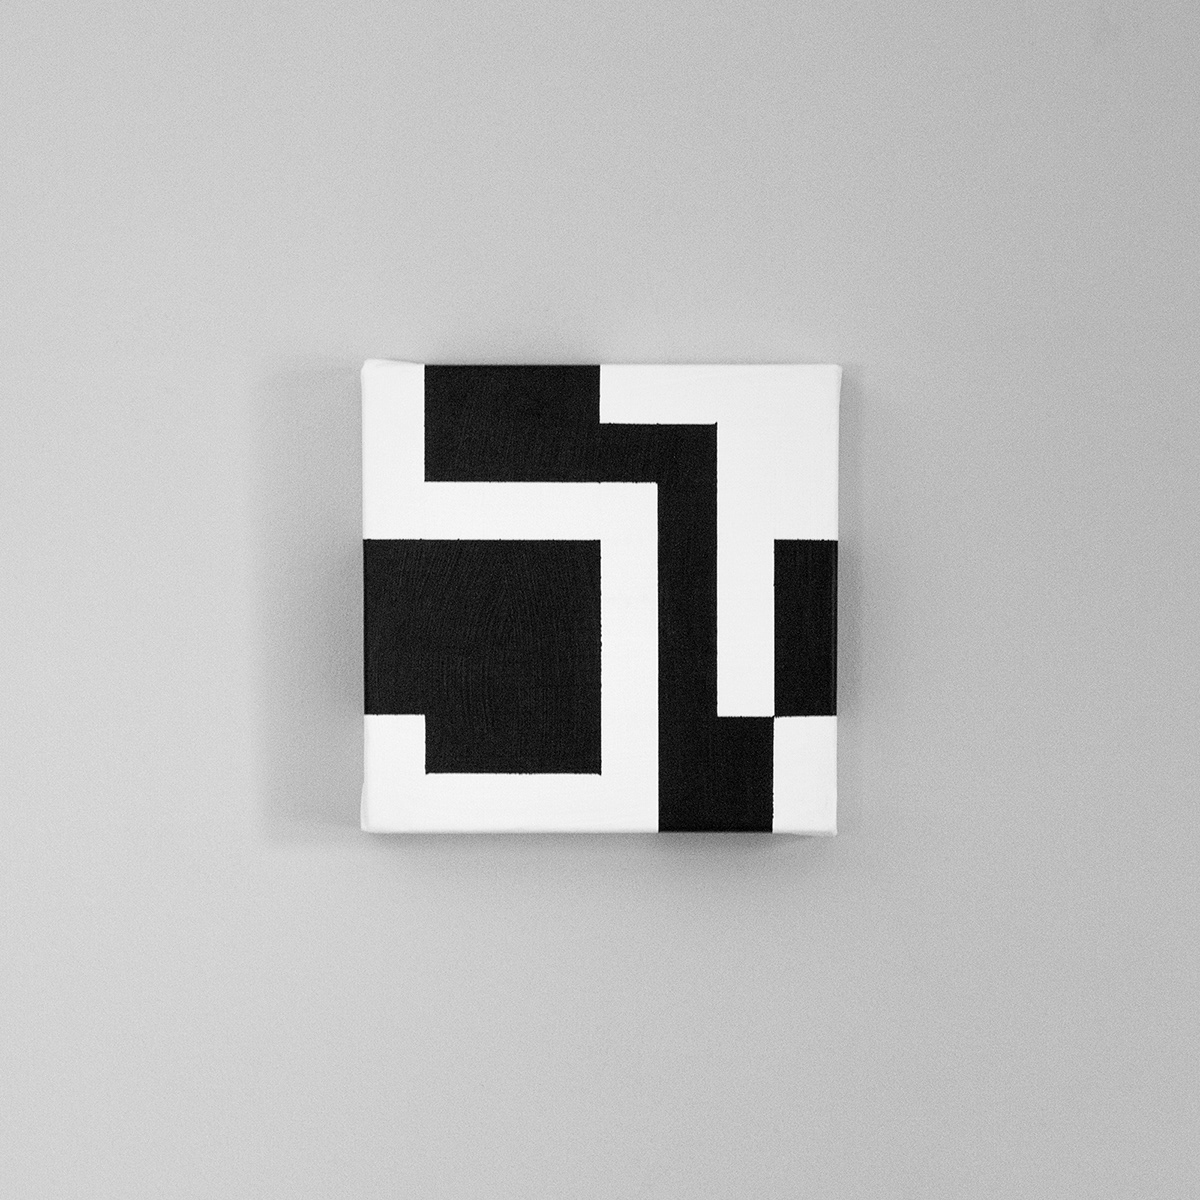 painting   canvas pixel bit black and white Fine Arts  linear hardedge Photography